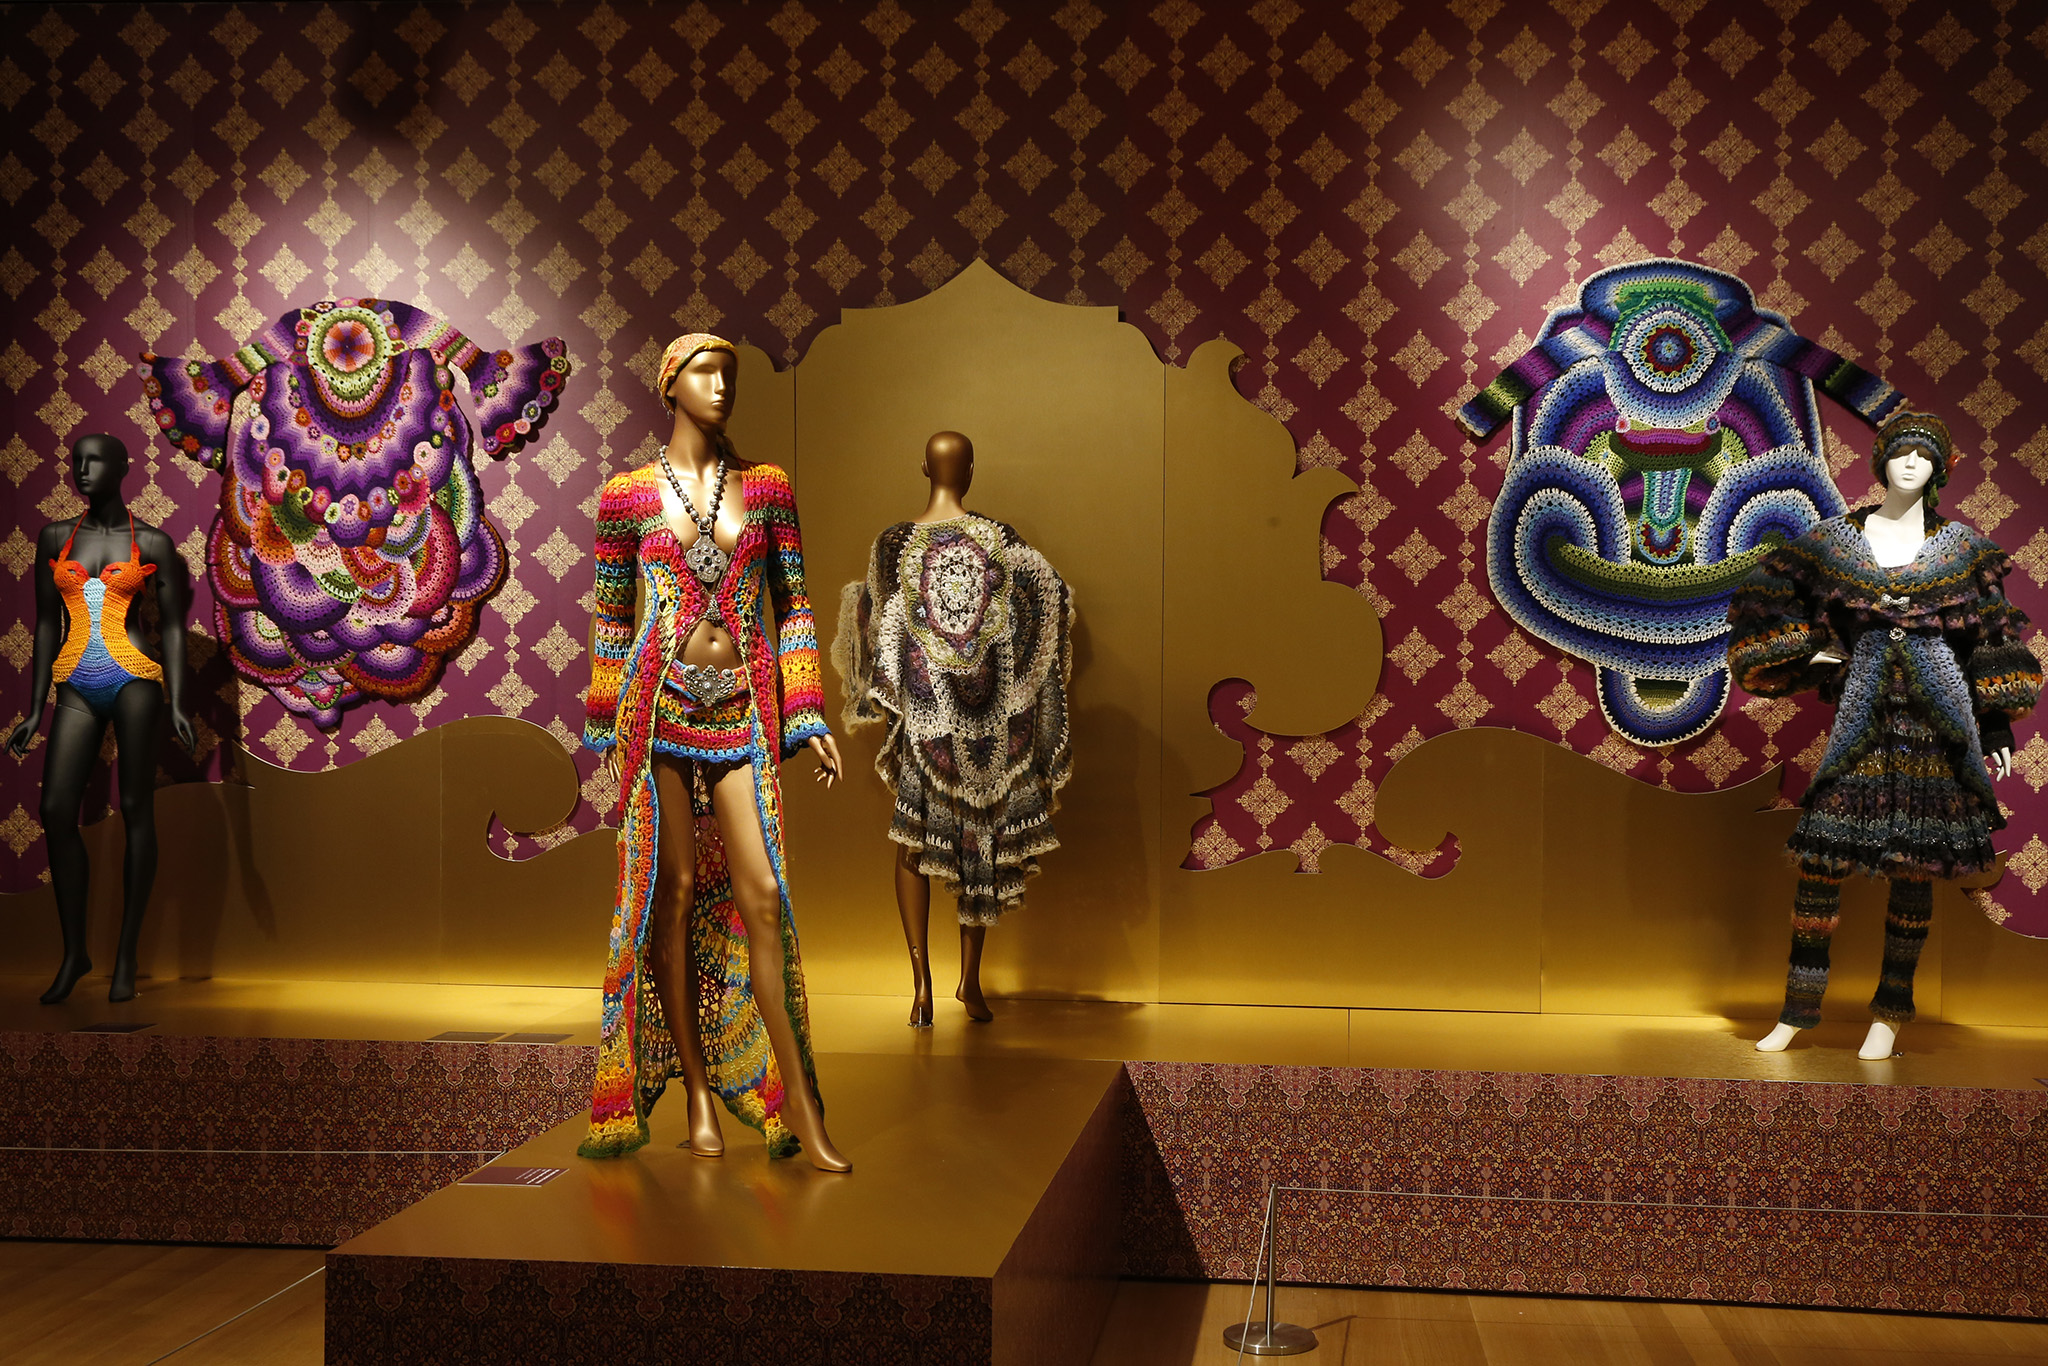 Inside 'Counter-Couture: Handmade Fashion in Counterculture' at the Museum of Arts and Design.